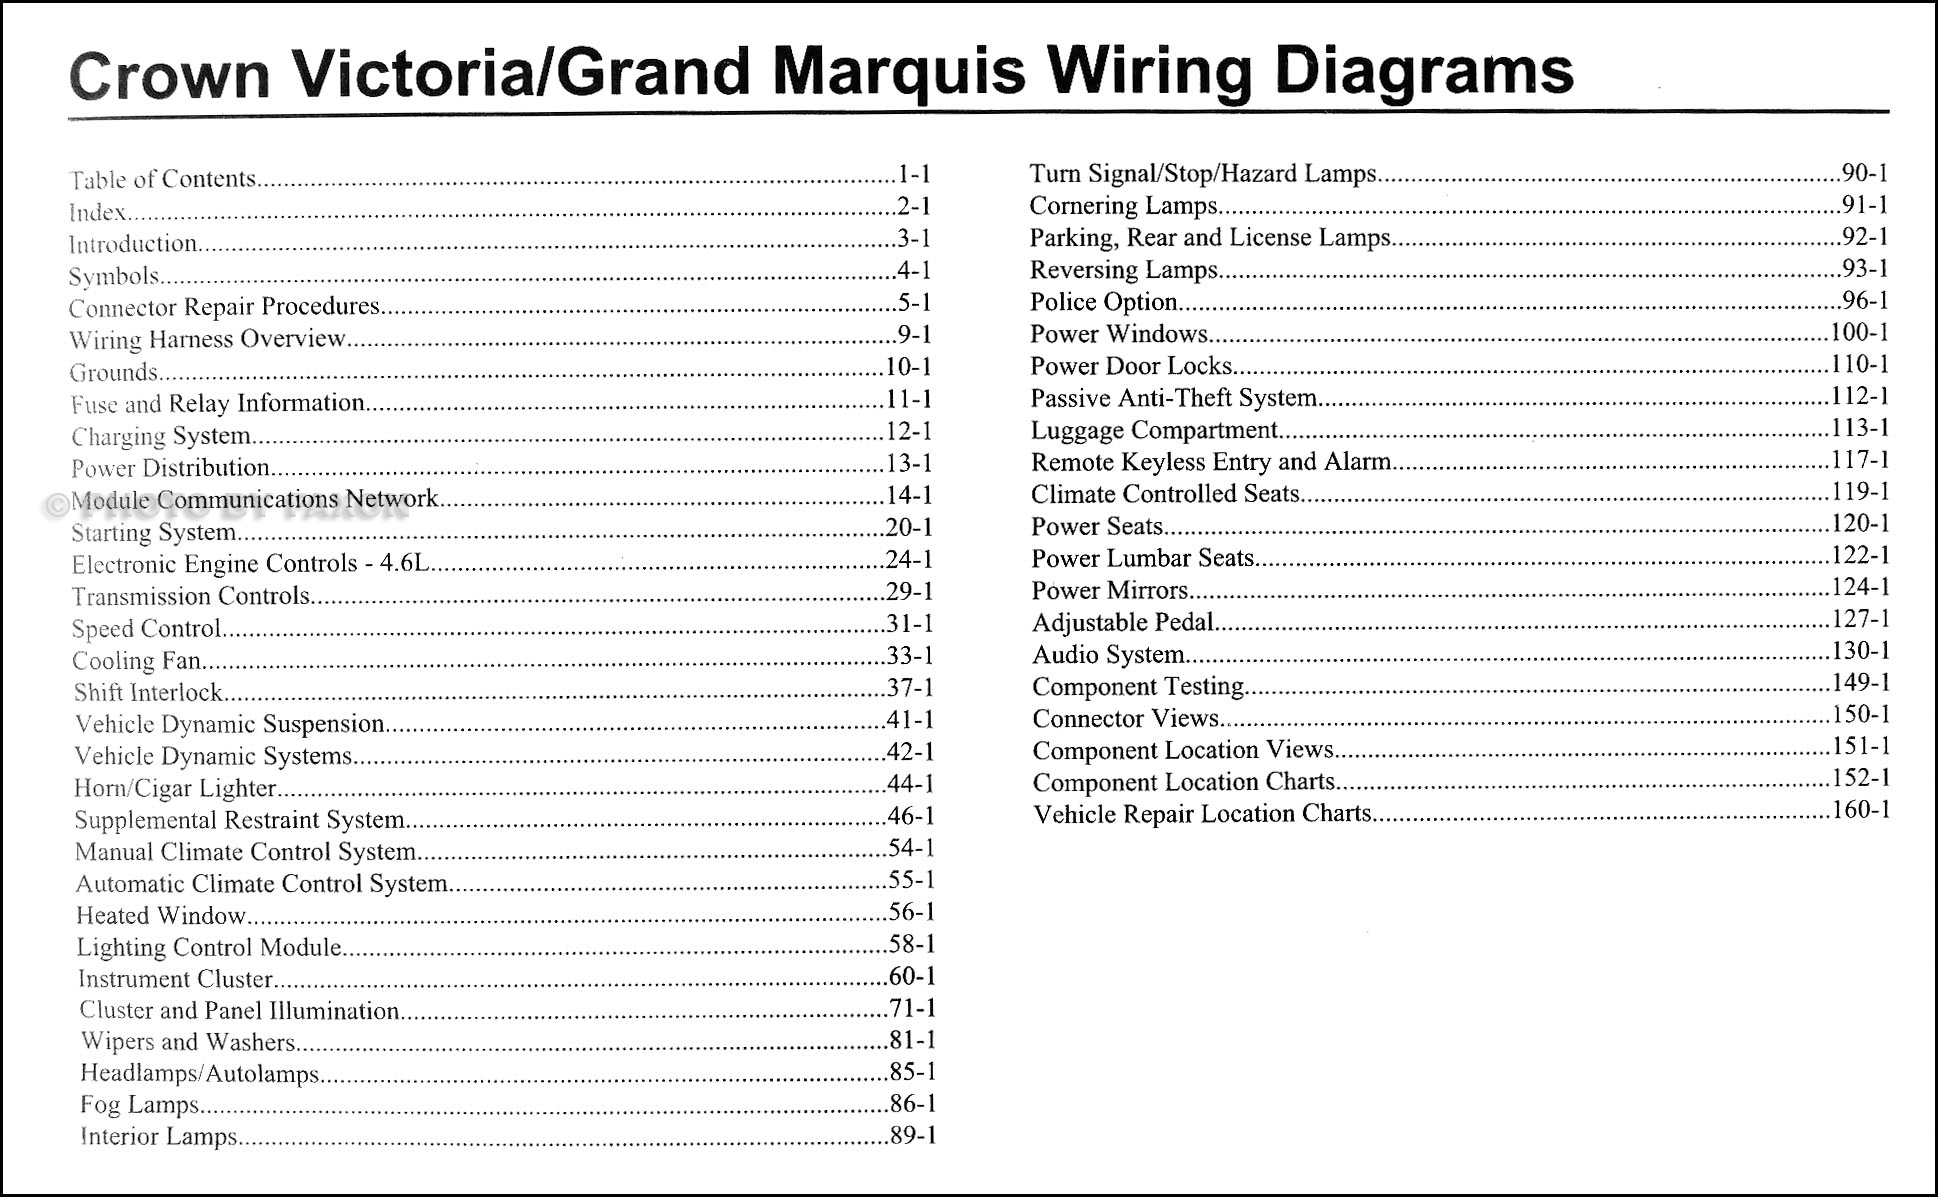 2009FordCrownVictoriaOWD TOC 2009 crown victoria & grand marquis original wiring diagram manual wiring diagram for 2004 crown victoria at edmiracle.co